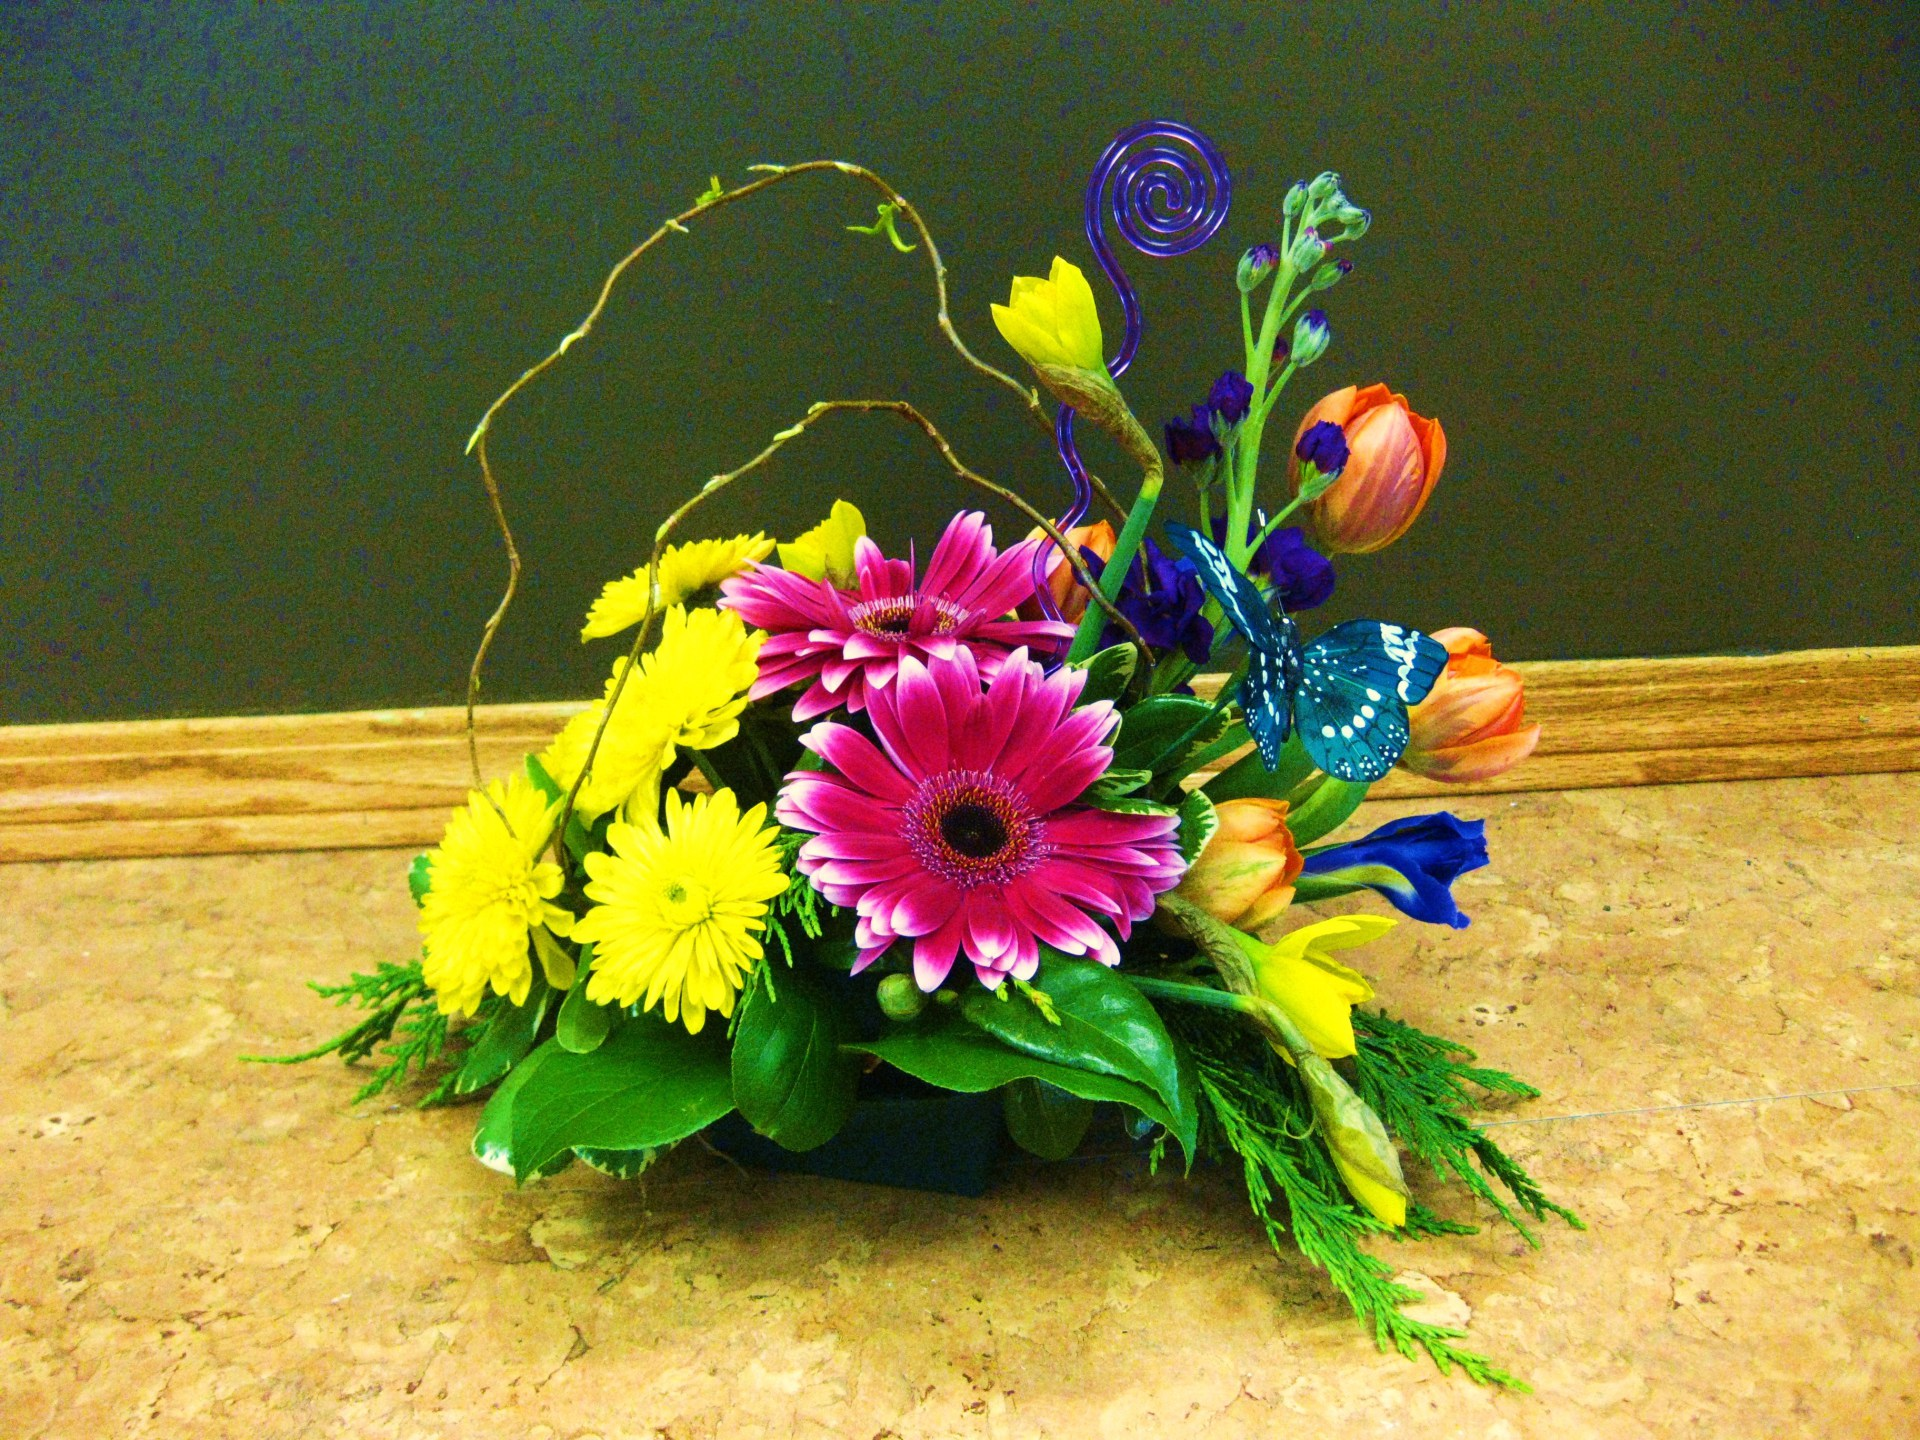 daffodils, iris, tulips, daisy, happy, cheerful flowers, bouquet, entertainers, gerbera, vase, lumsden, regina, craven, regina beach, buena vista